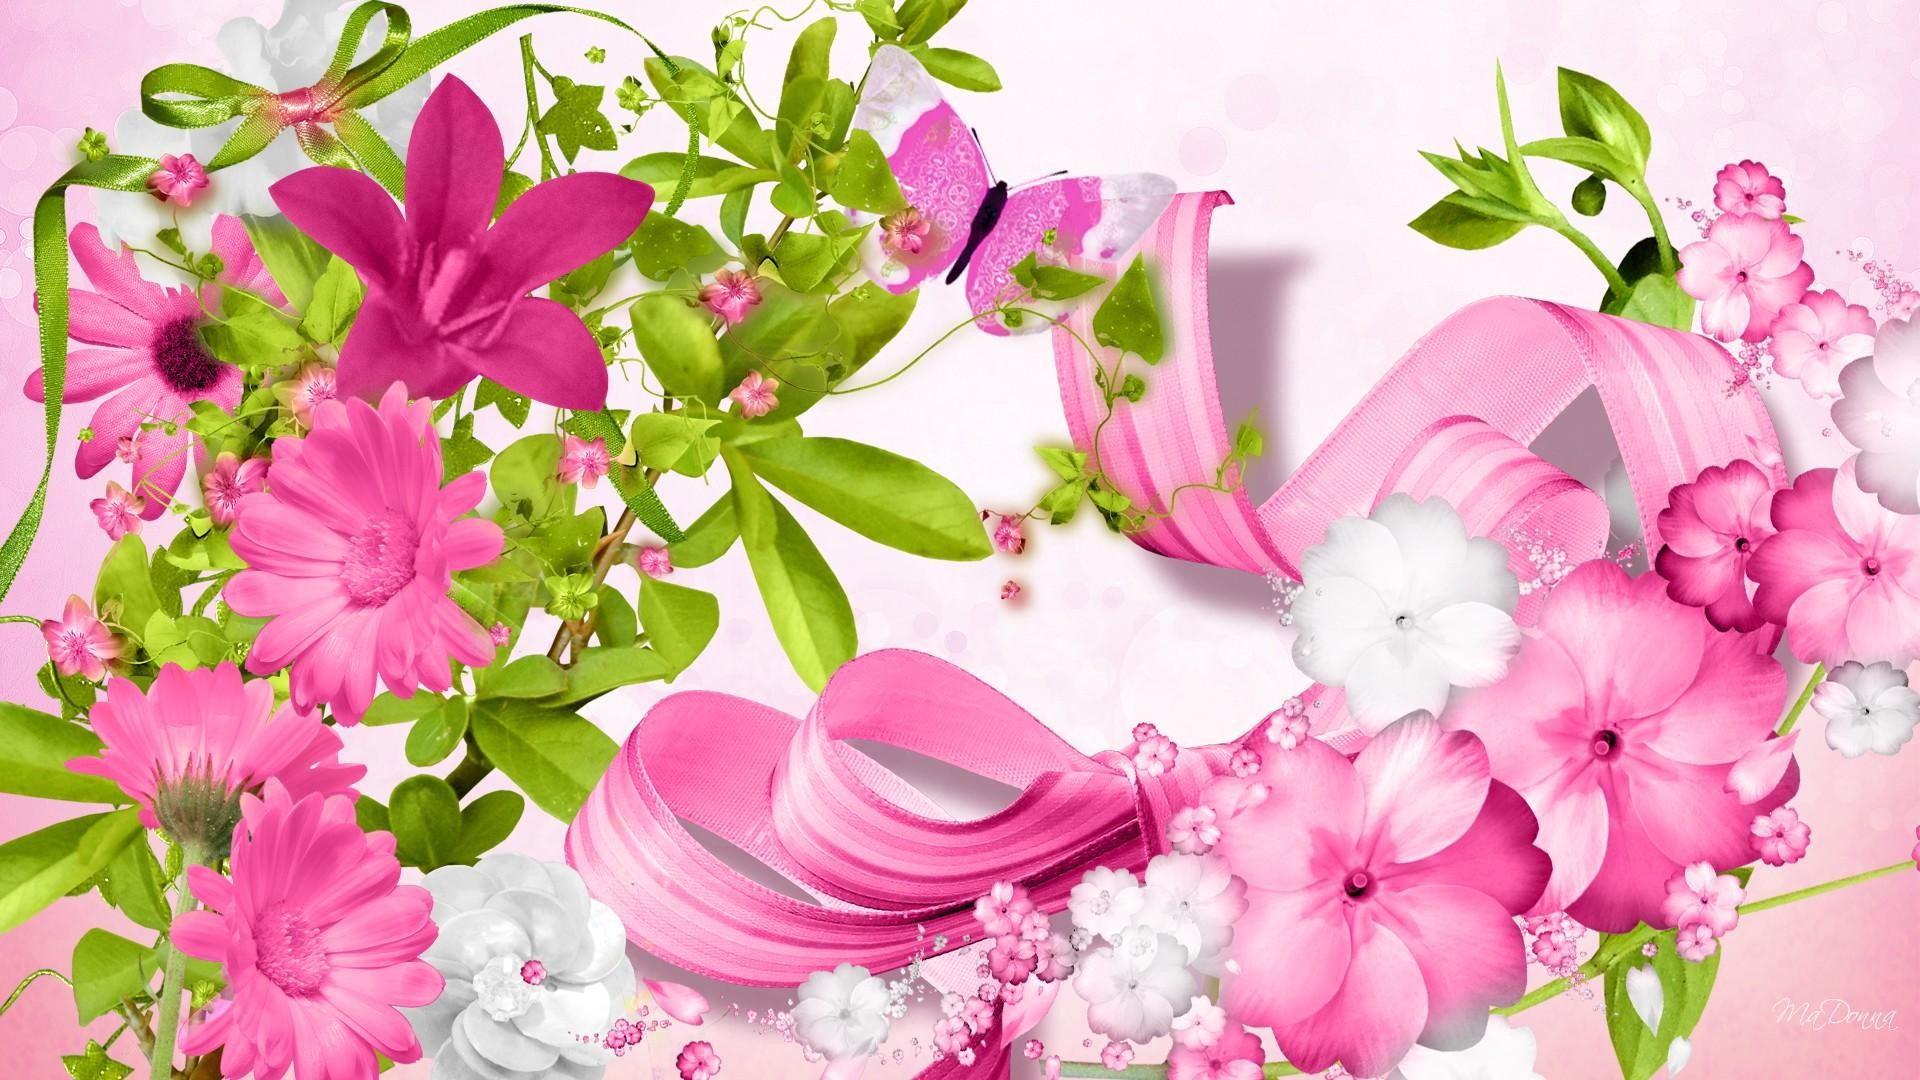 Pink floral wallpapers 57 images 1920x1200 19201200 pink flowers image hd desktop wallpapers cool images hd download apple background wallpapers free display lovely wallpapers 19201200 mightylinksfo